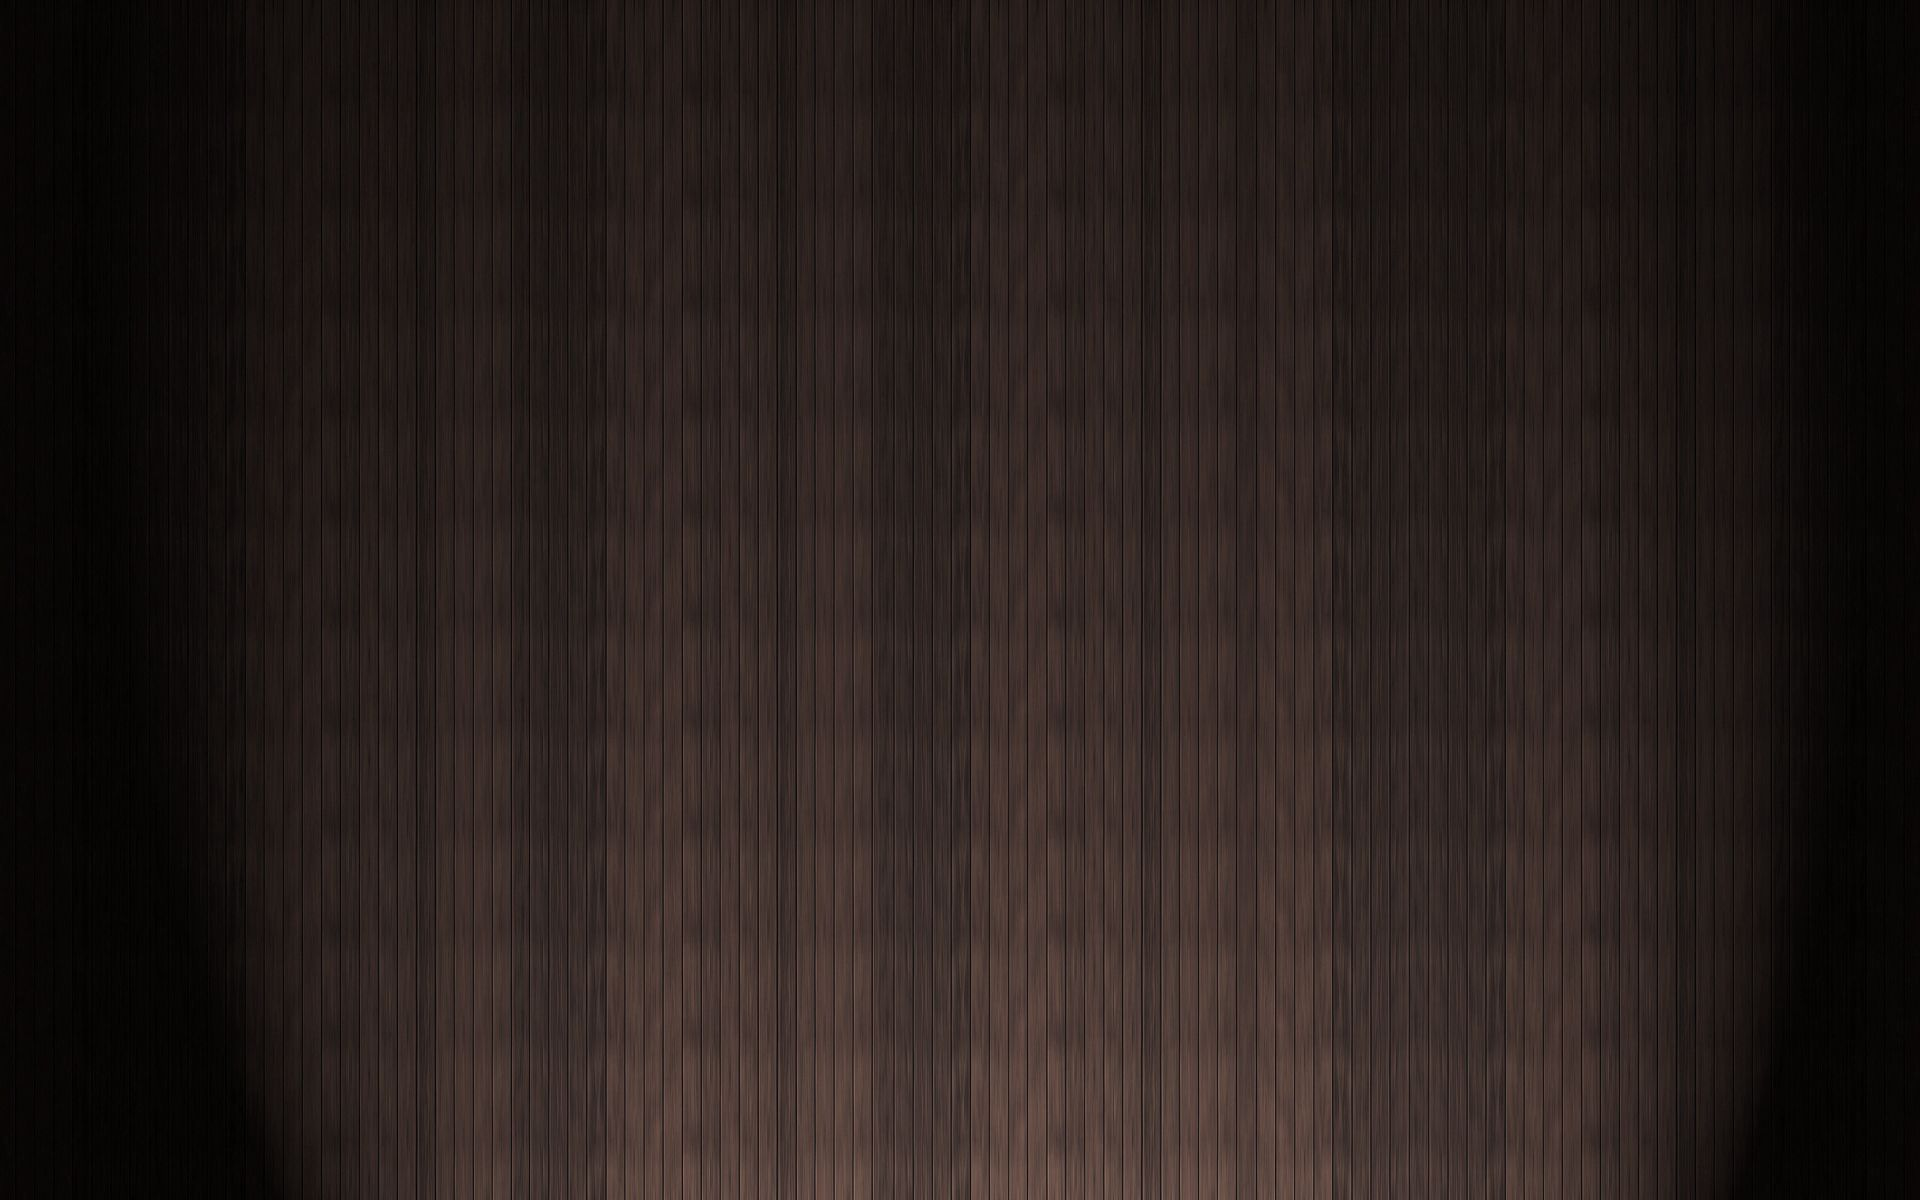 60900 download wallpaper Textures, Texture, Planks, Board, Shadow, Shine, Light, Twilight screensavers and pictures for free